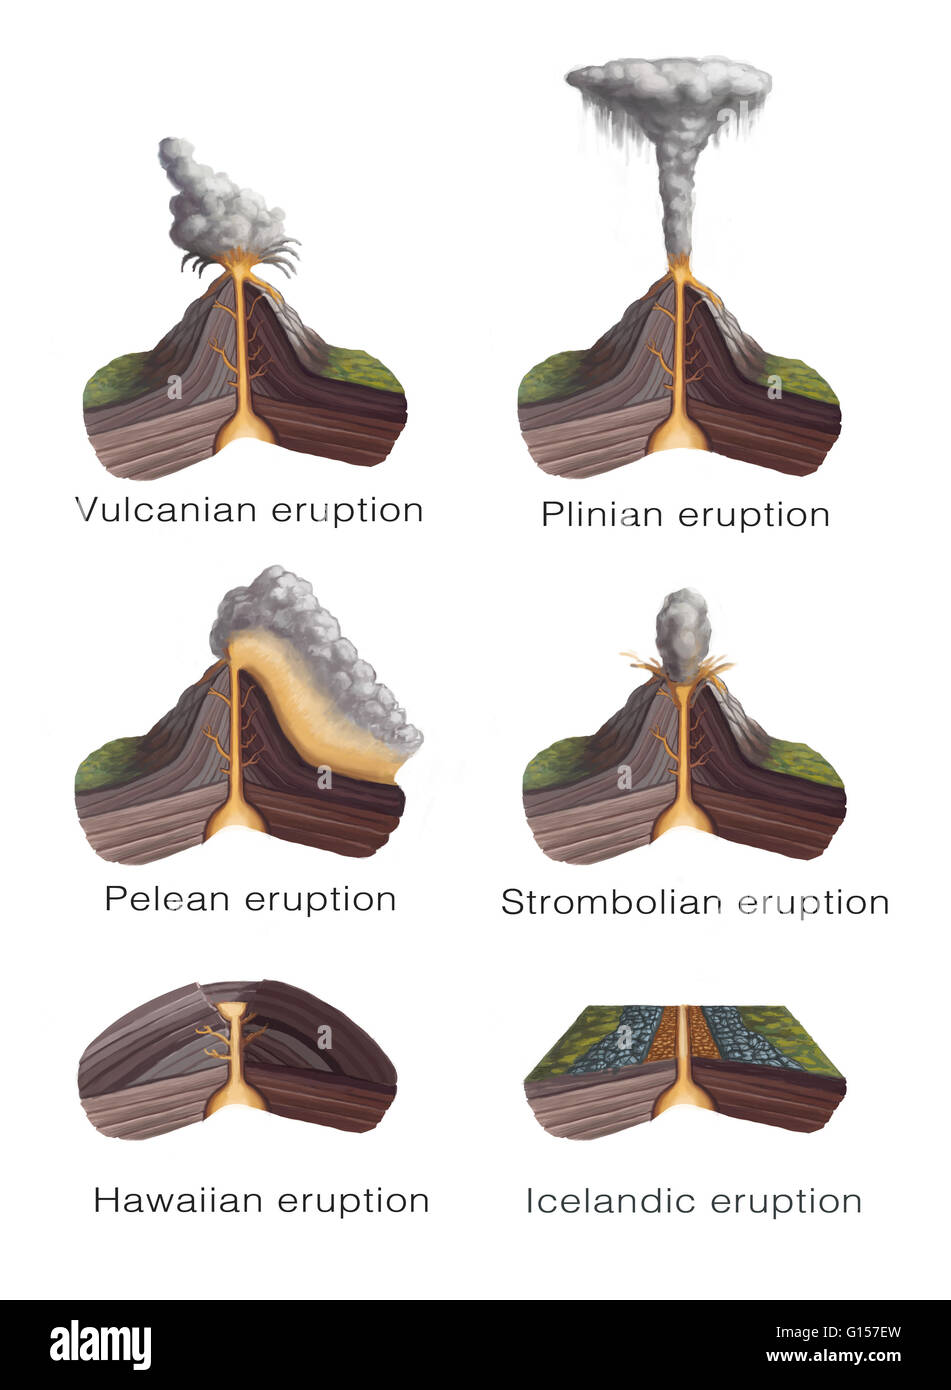 Types Of Volcanic Eruptions Vulcanian Eruption A Short Violent. Types Of Volcanic Eruptions Vulcanian Eruption A Short Violent Relatively Small Explosion Viscous Magma The Results From. GM. Magmatic Eruption Diagram At Scoala.co